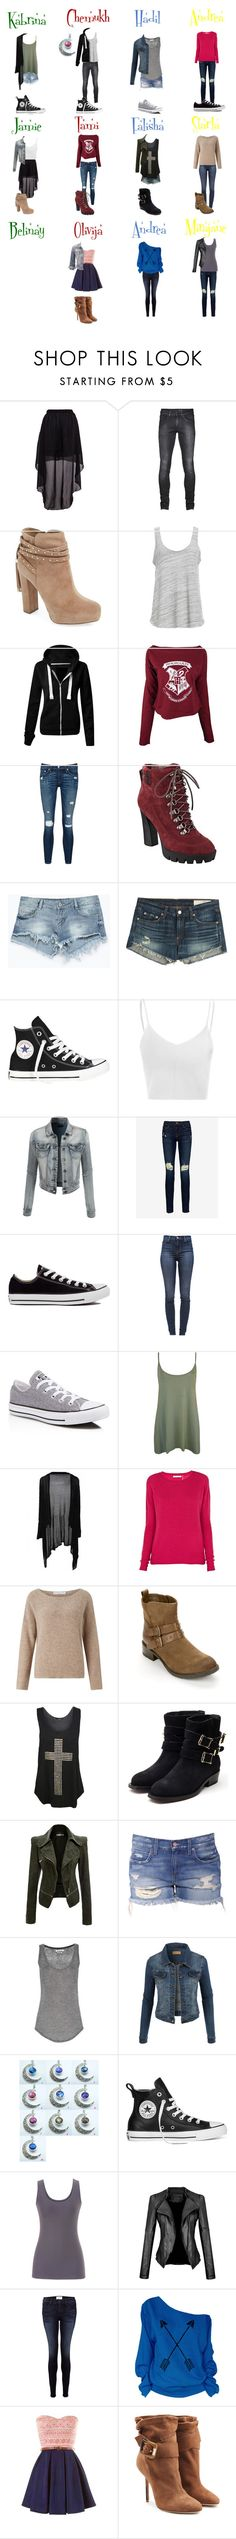 """""""Untitled #31"""" by cecilie-smukke ❤ liked on Polyvore featuring interior, interiors, interior design, home, home decor, interior decorating, Jessica Simpson, Project Social T, rag & bone/JEAN and Nine West"""